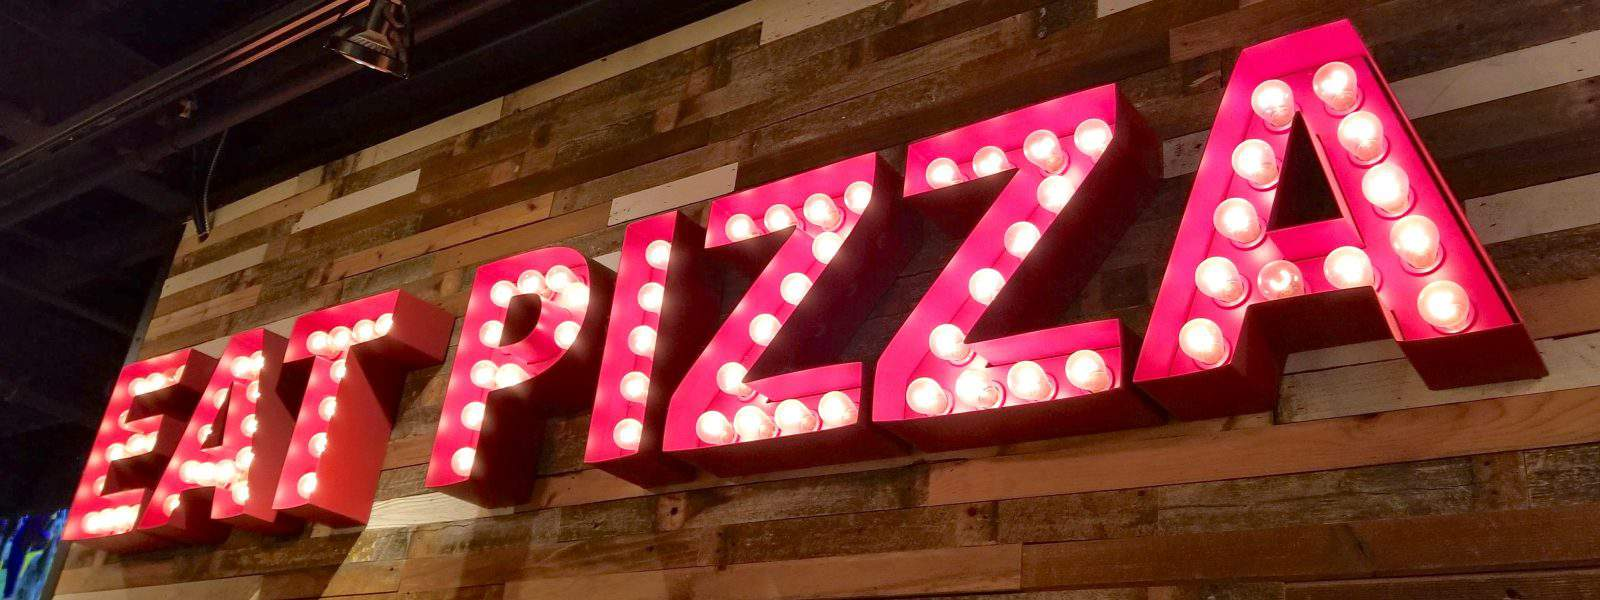 Where to Eat Pizza Tour of Detroit: With Gluten Free & Dairy Free Options